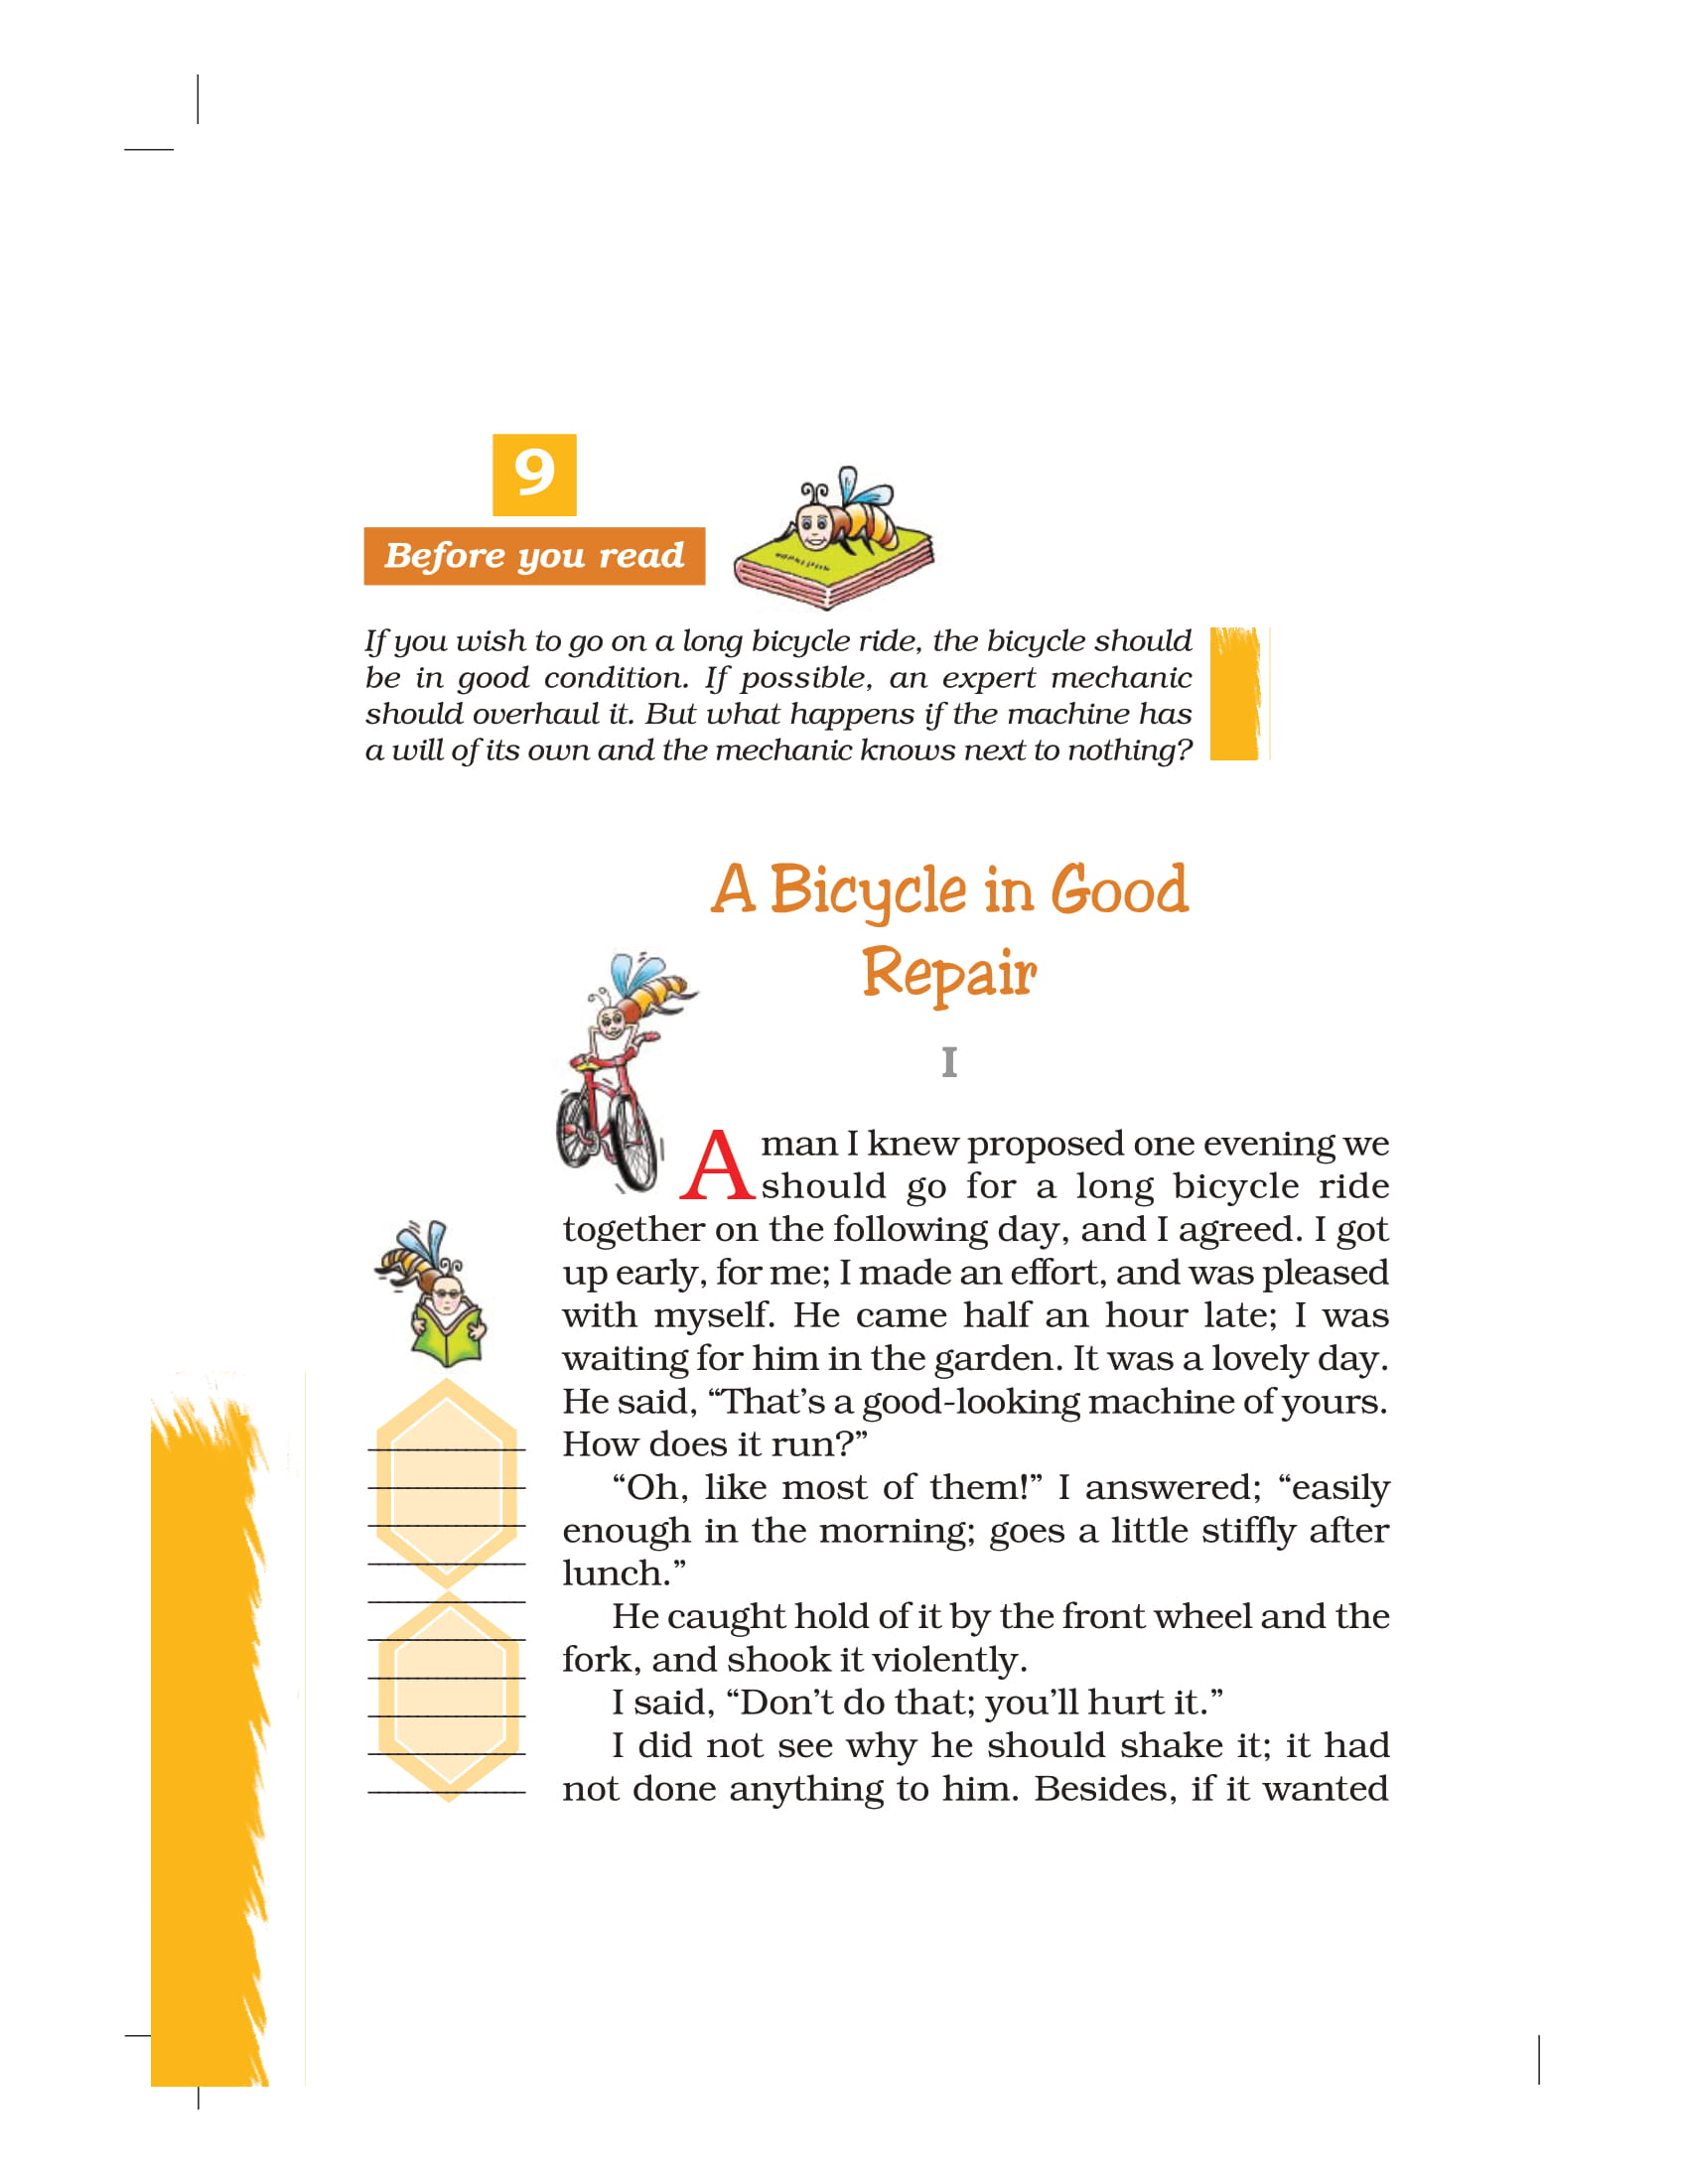 NCERT Book Class 7 English Honeycomb Chapter 9 A Bicycle in Good Repair